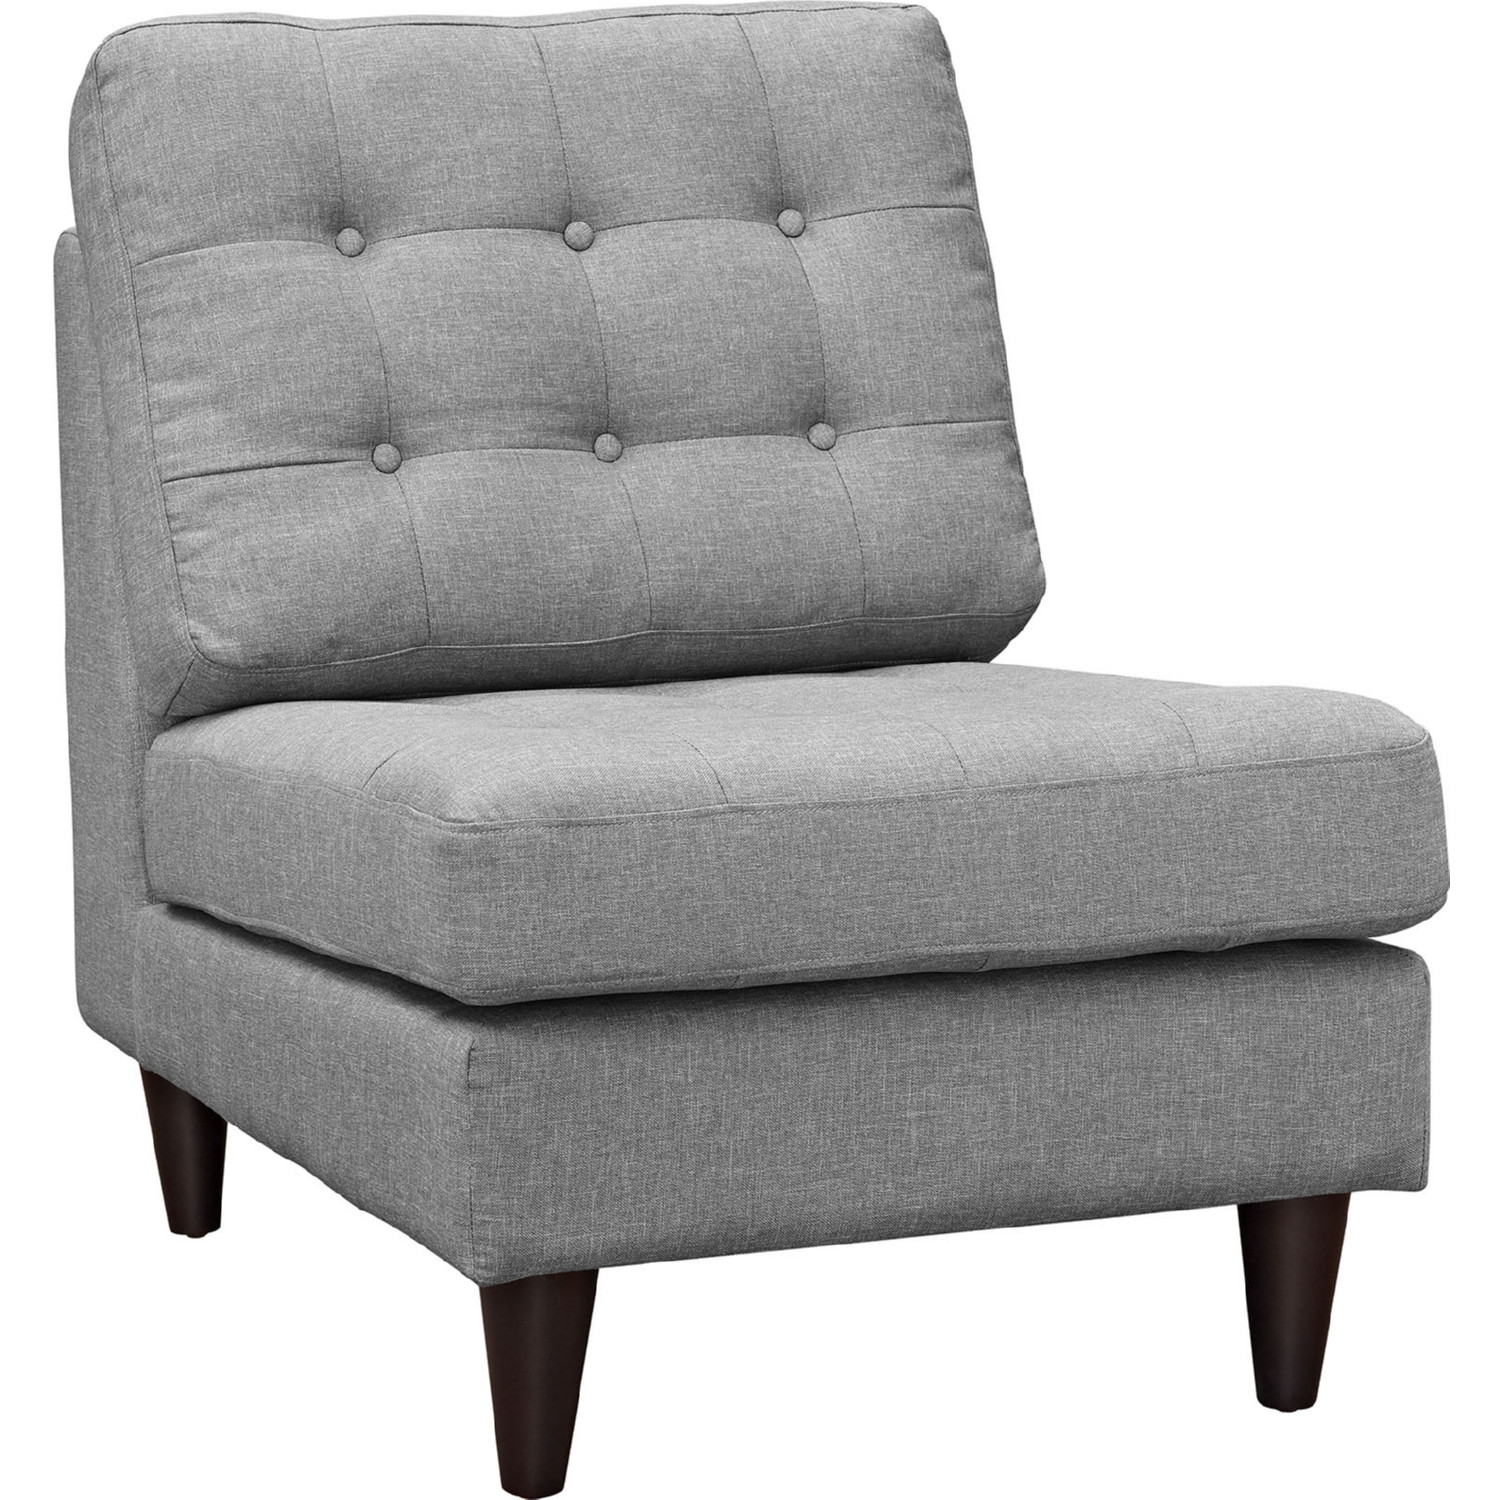 Remarkable Empress Accent Chair In Tufted Light Gray On Black Wood Legs By Modway Bralicious Painted Fabric Chair Ideas Braliciousco